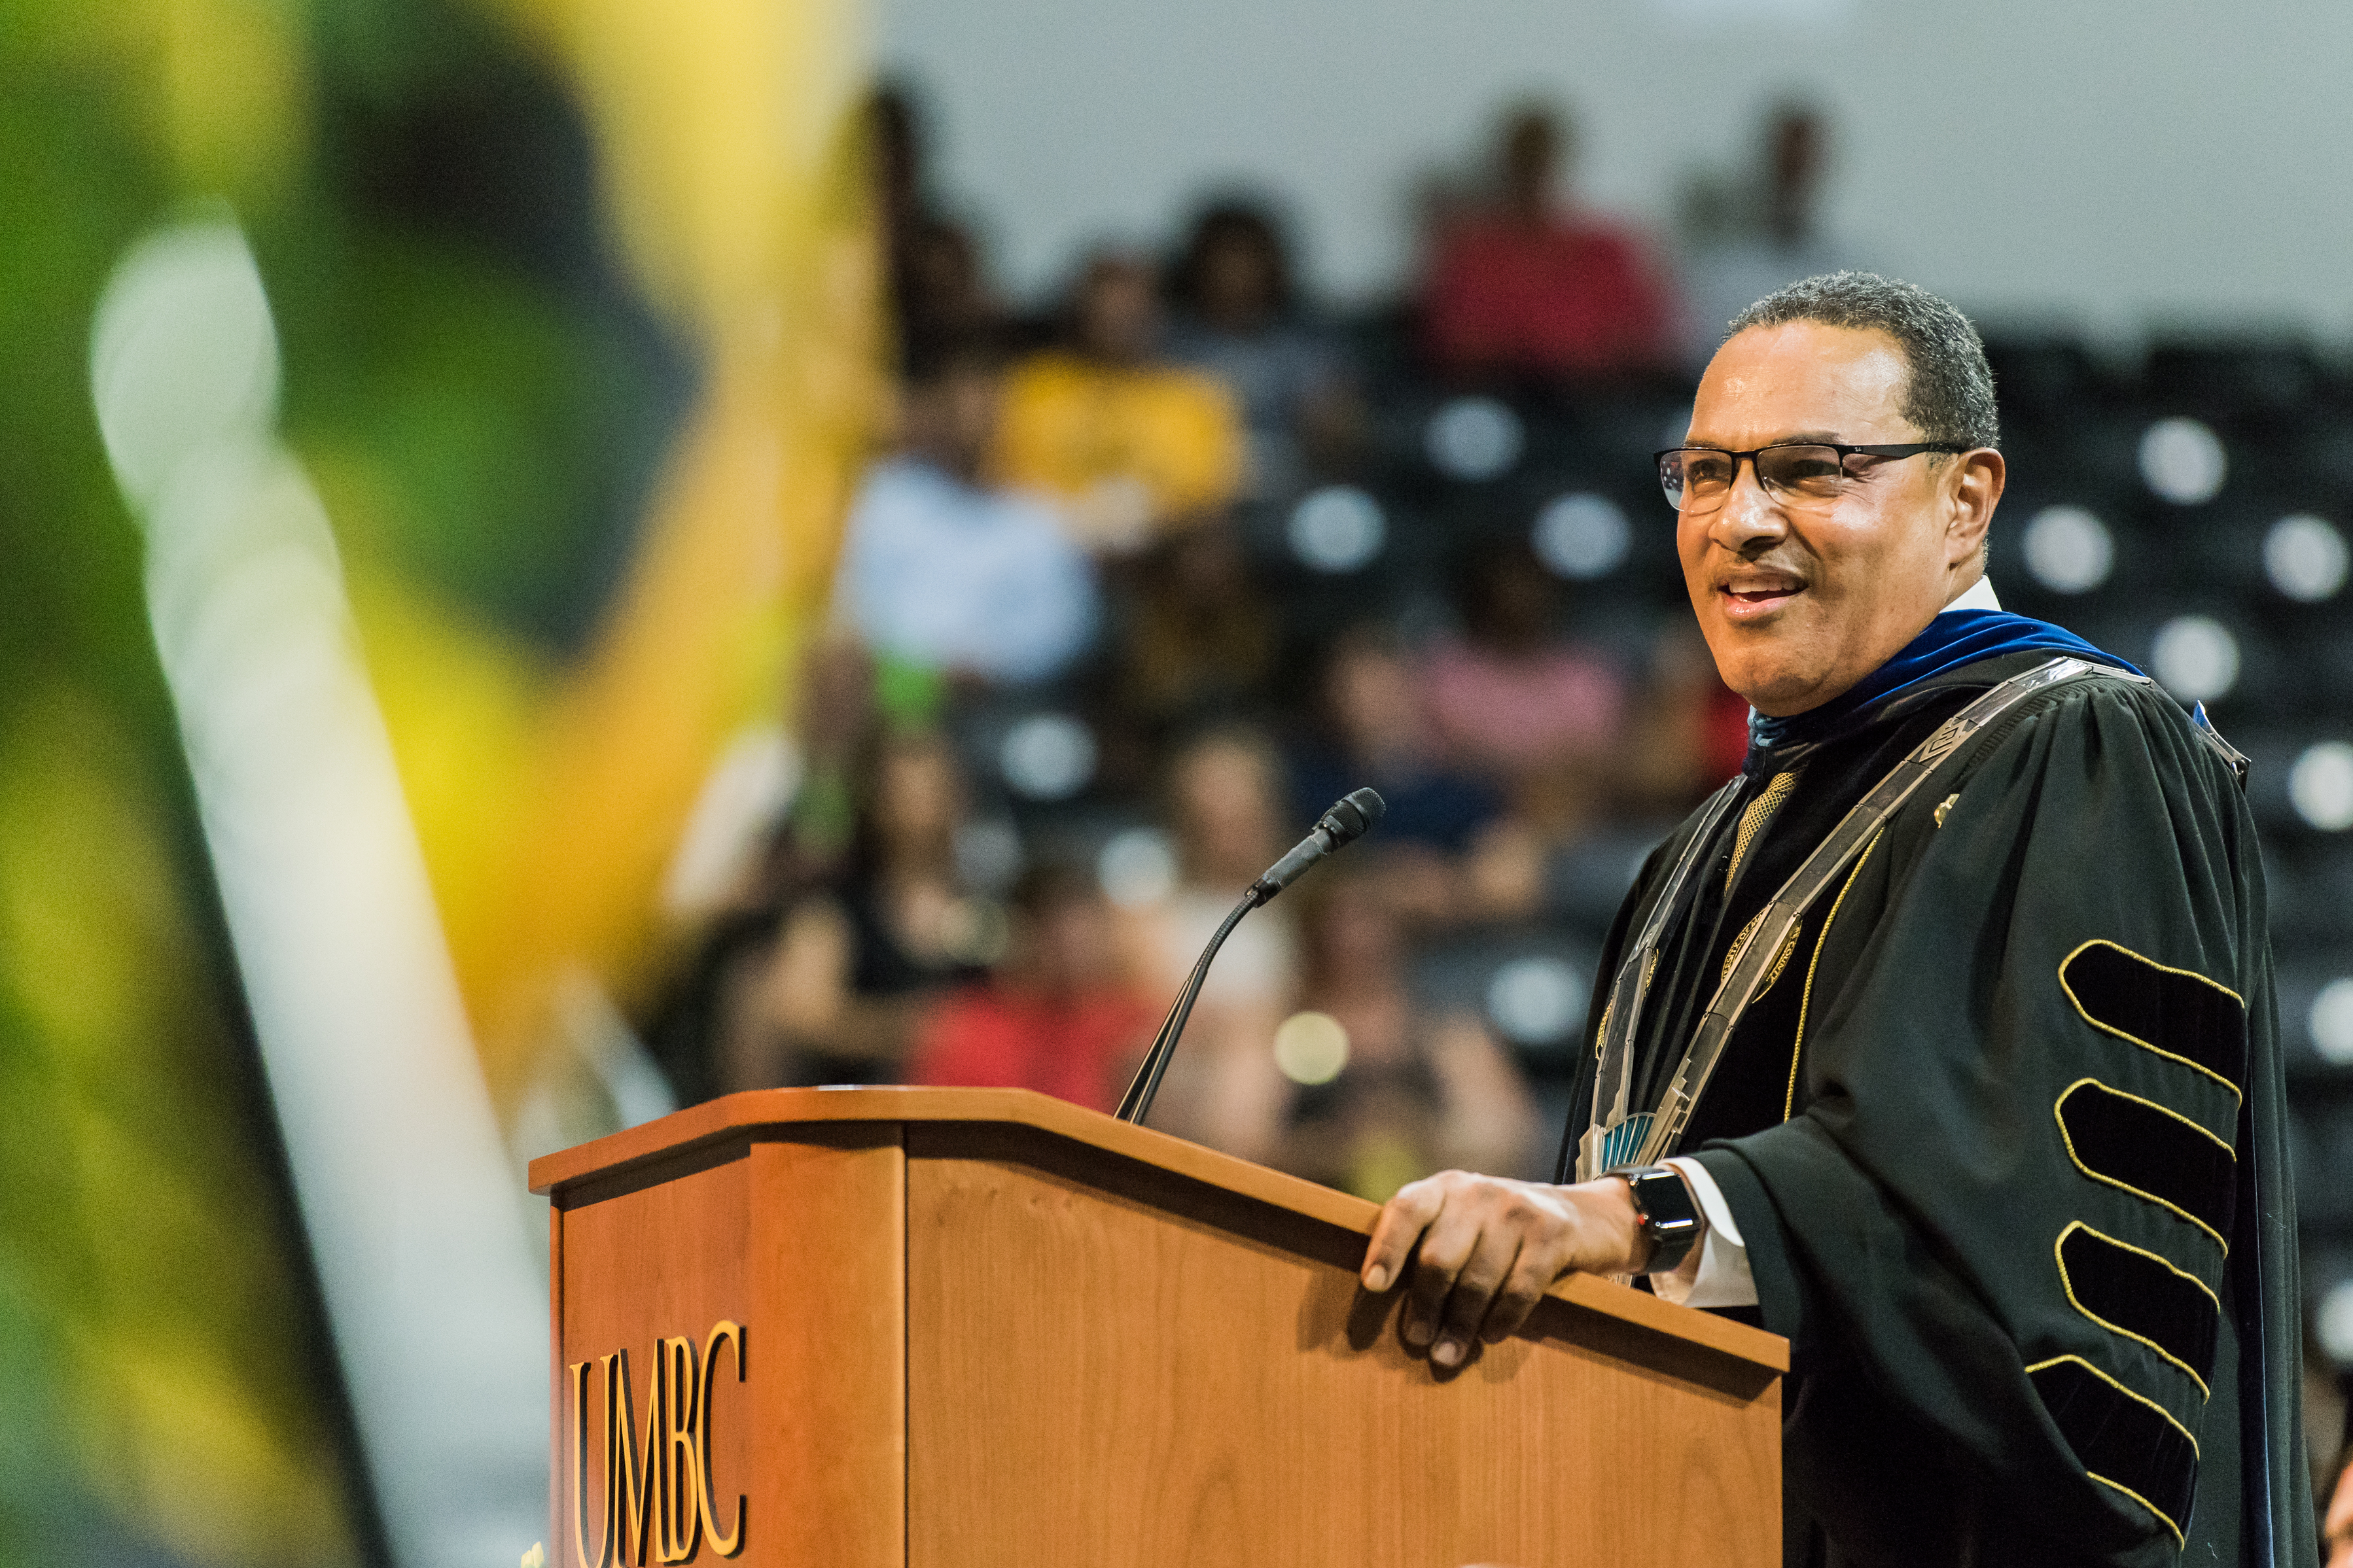 President Freeman Hrabowski, who will retire from UMBC in spring 2022, brought increased attention to college access over the past three decades. (Marlayna Demond for UMBC)